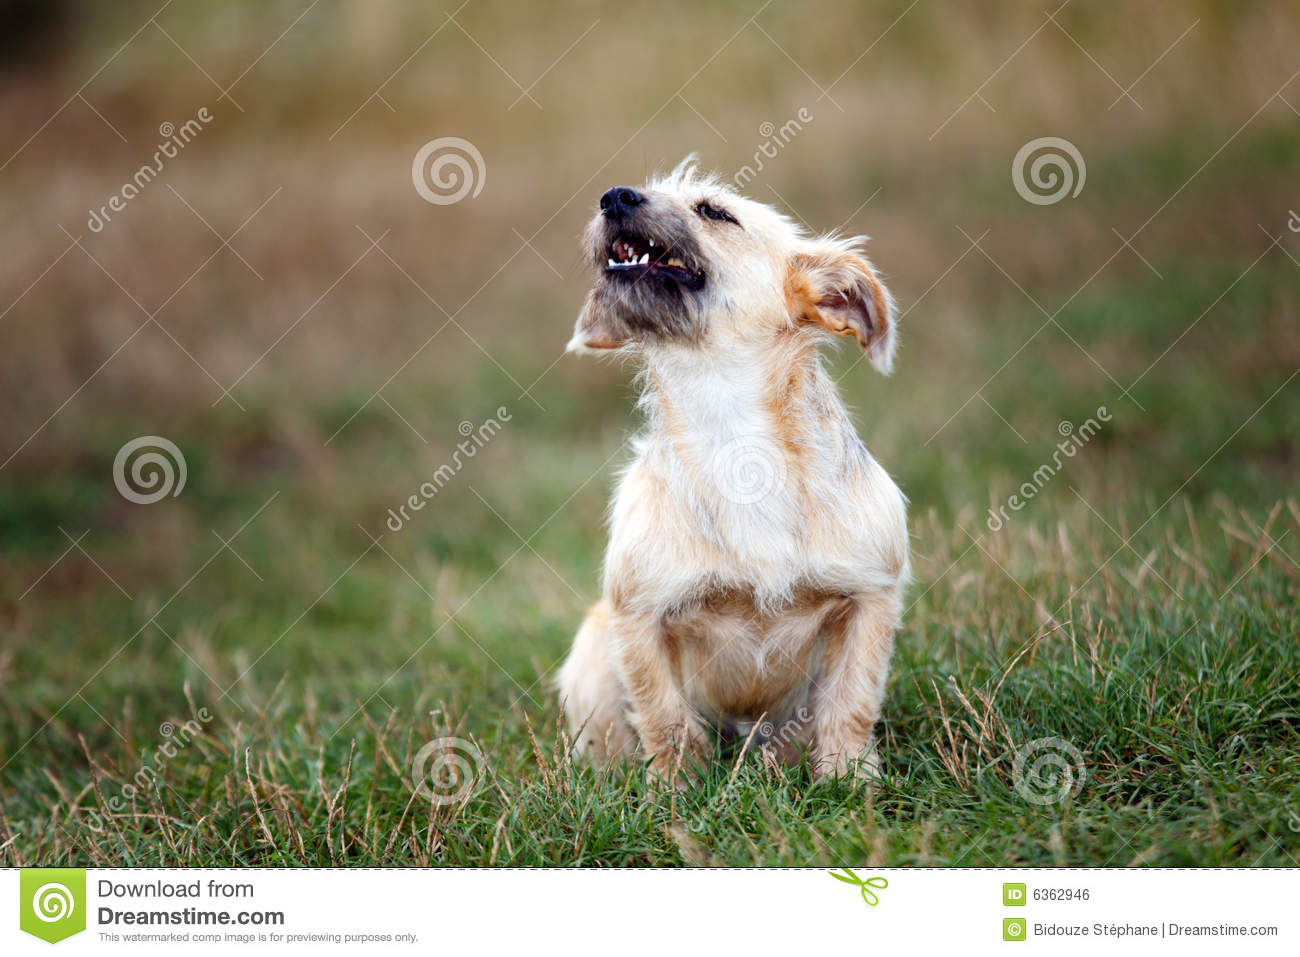 how to stop little dogs from barking